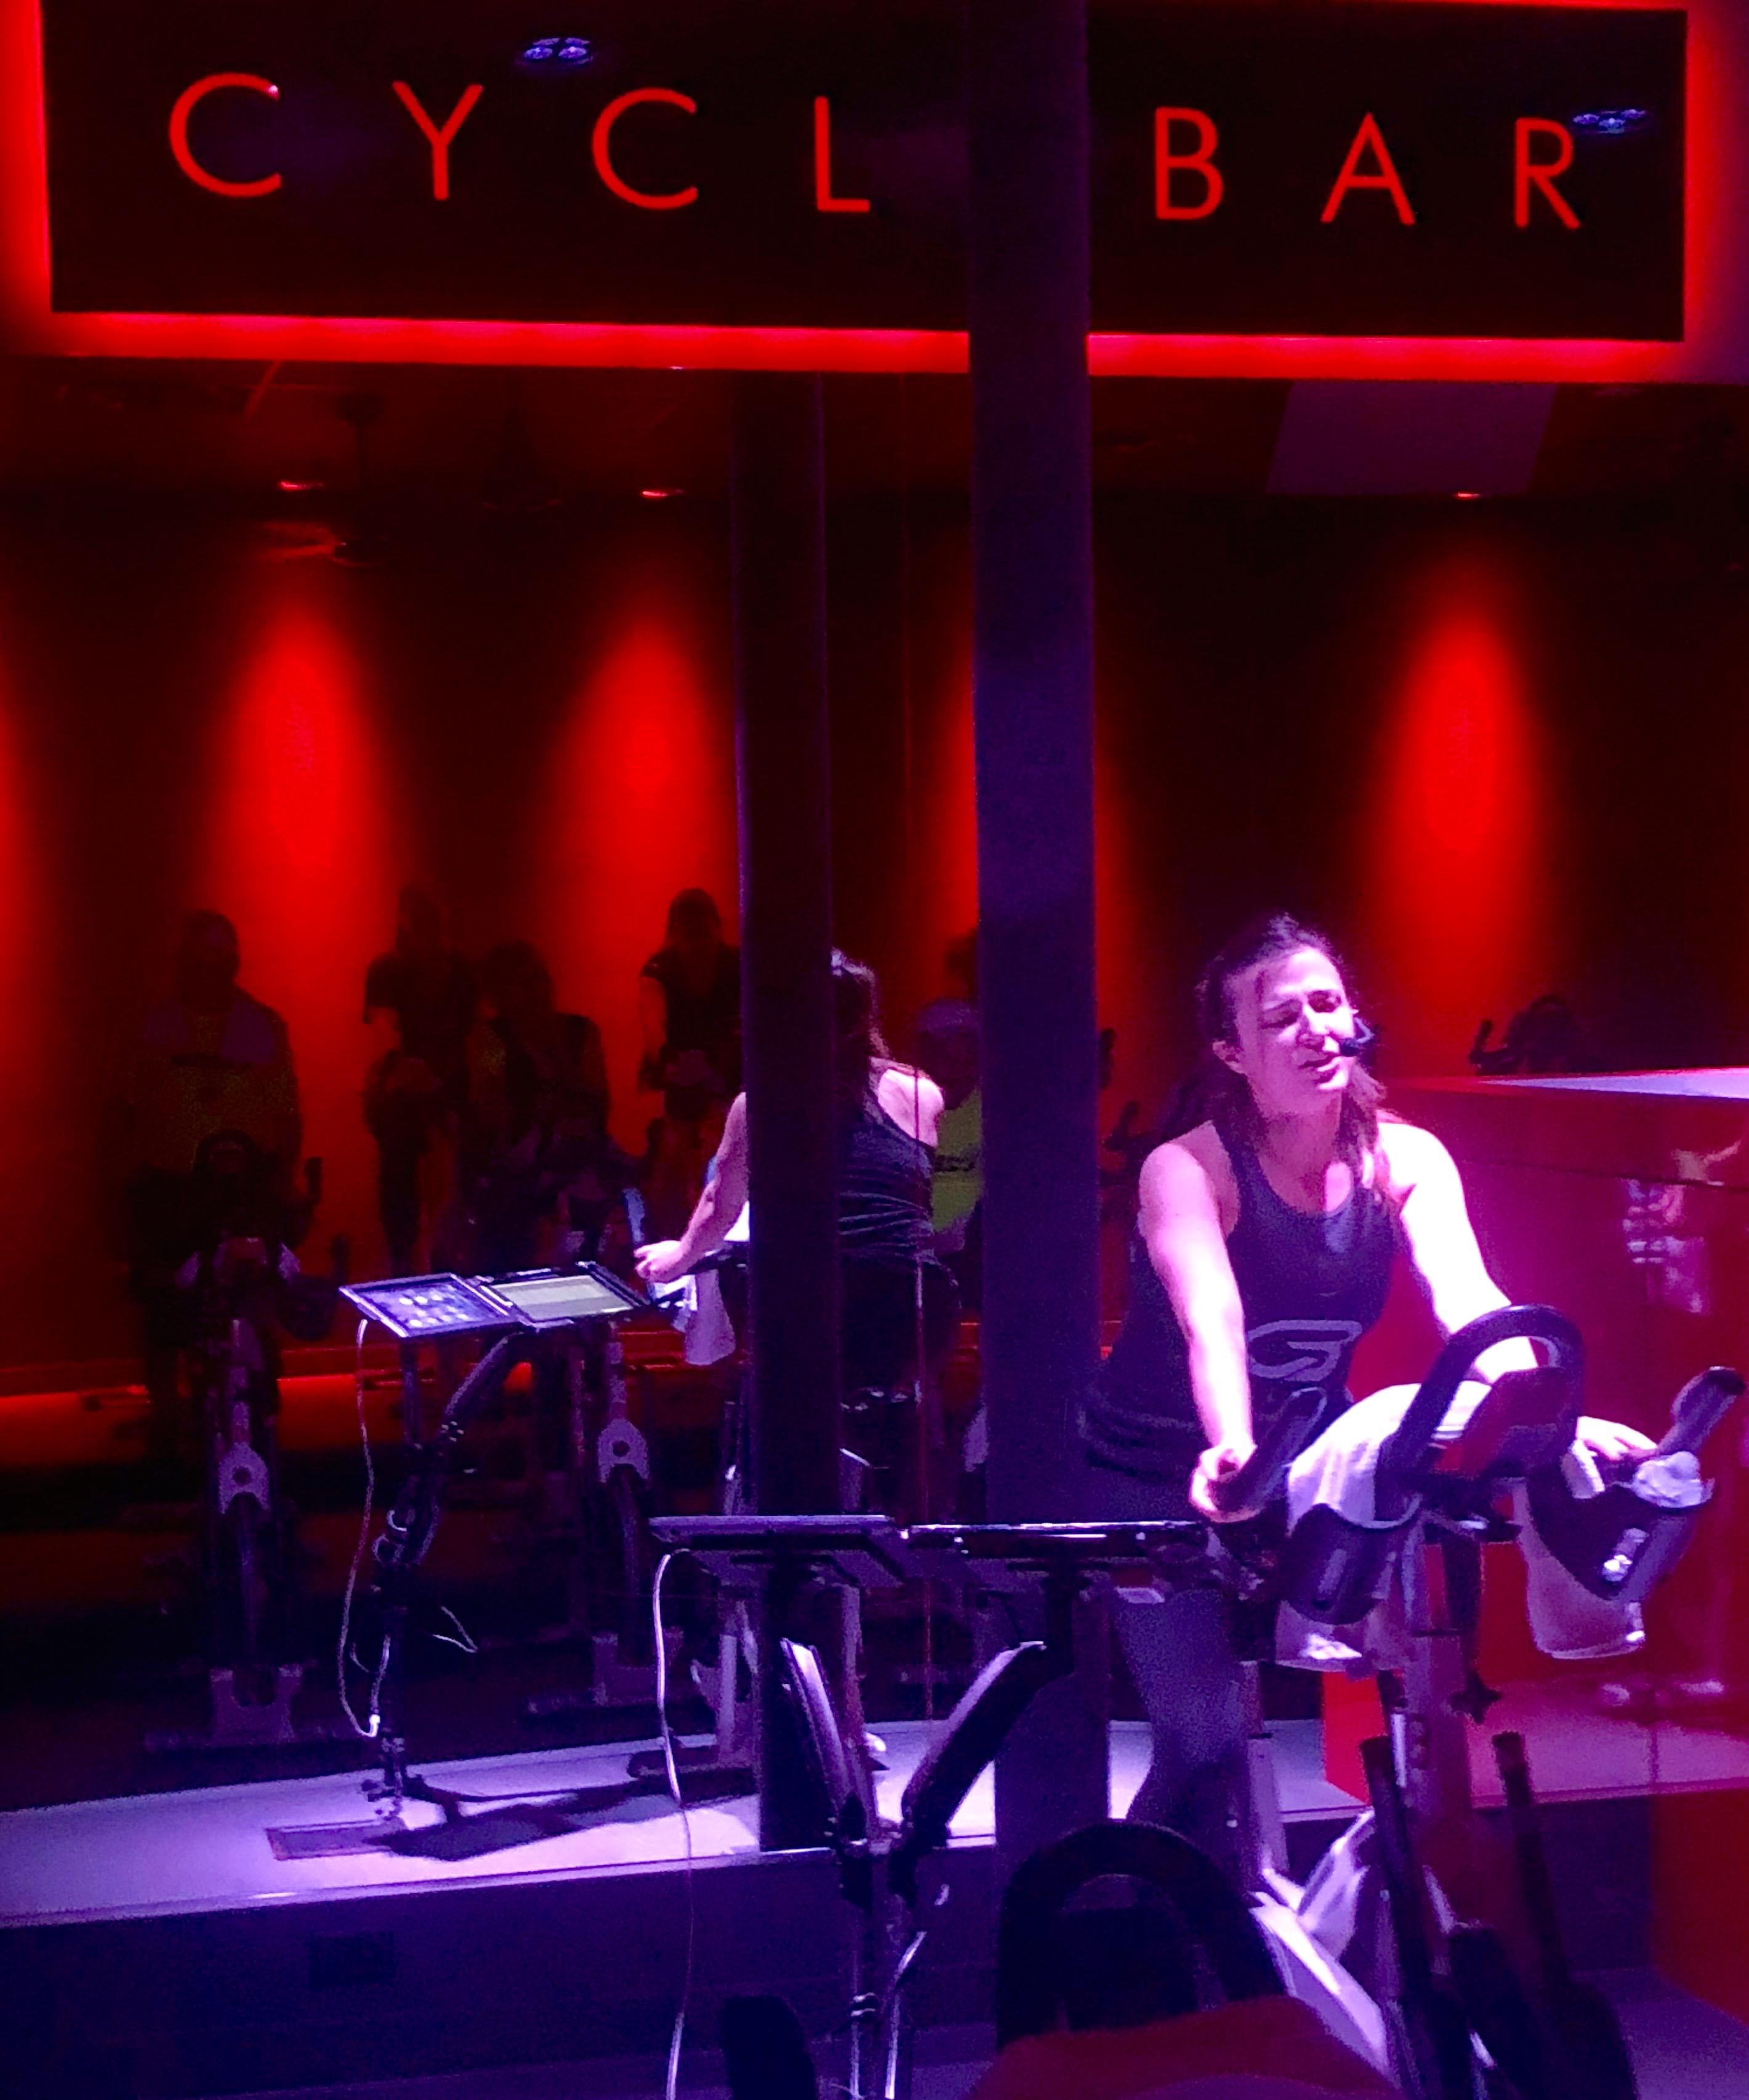 Cycle To End Father Absence - Cyclebar Dunwoody, GA - 2/18/18 @ 1pm Photo